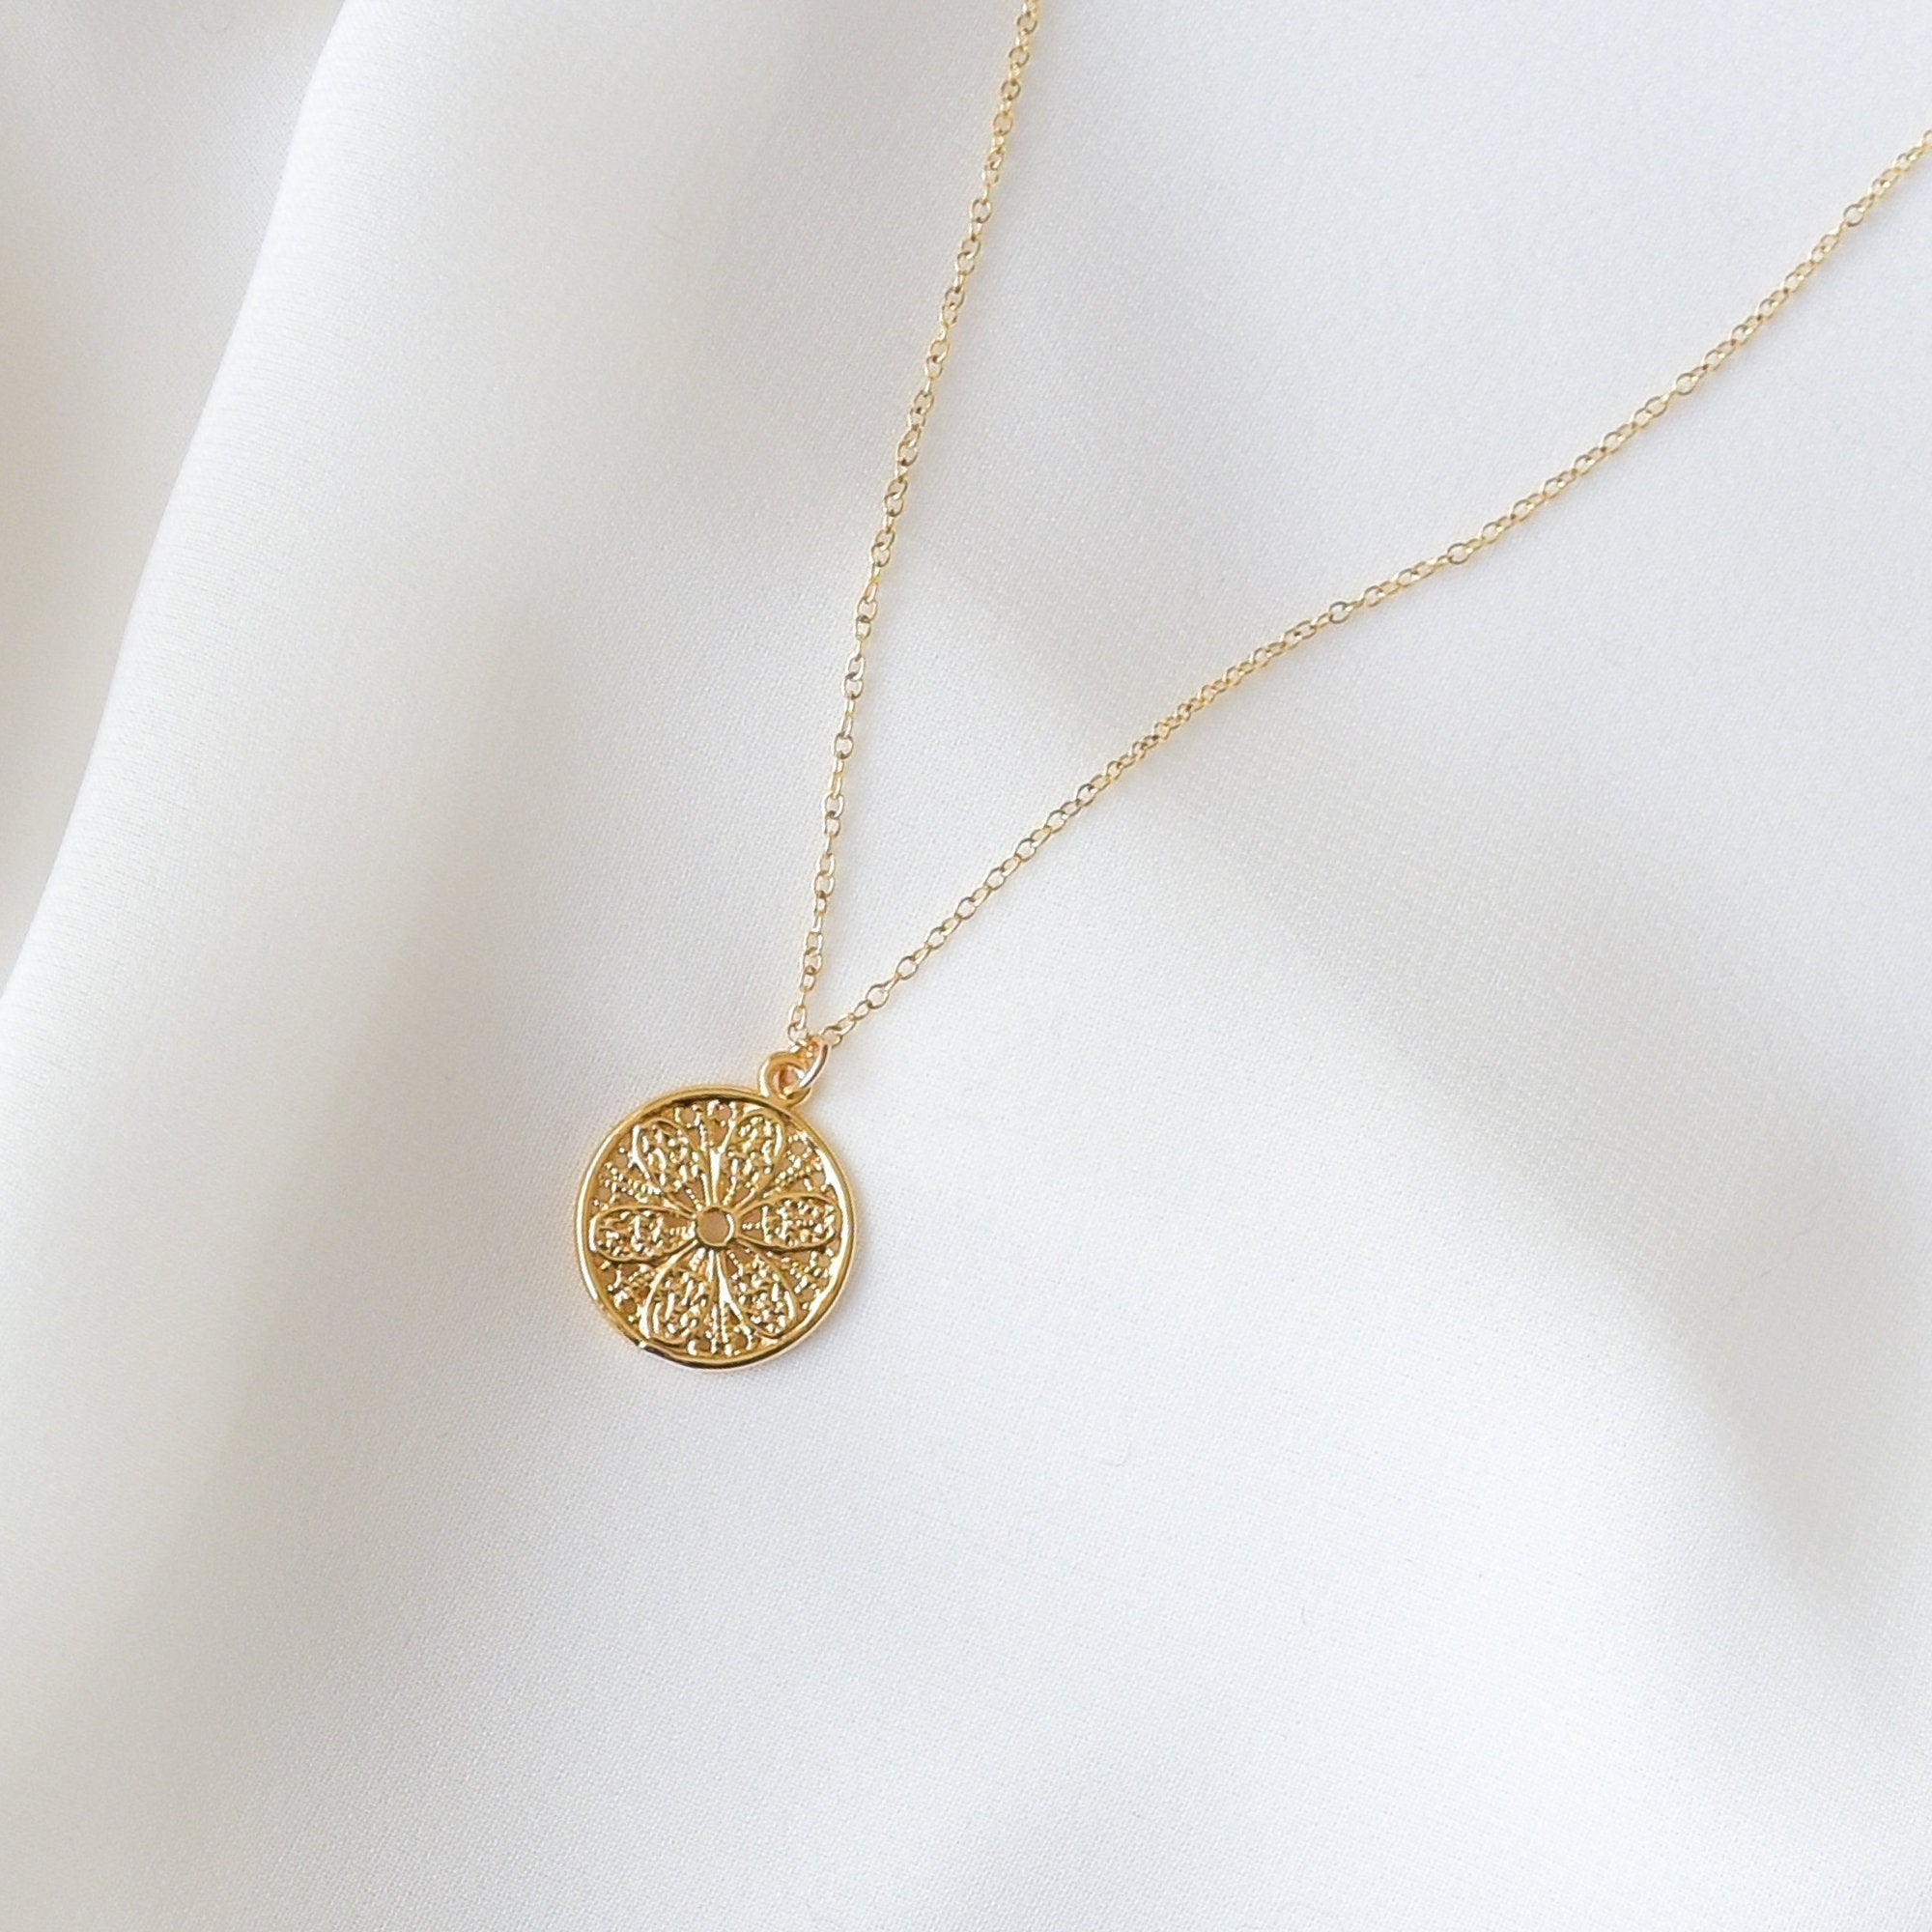 Filigree Coin Necklace